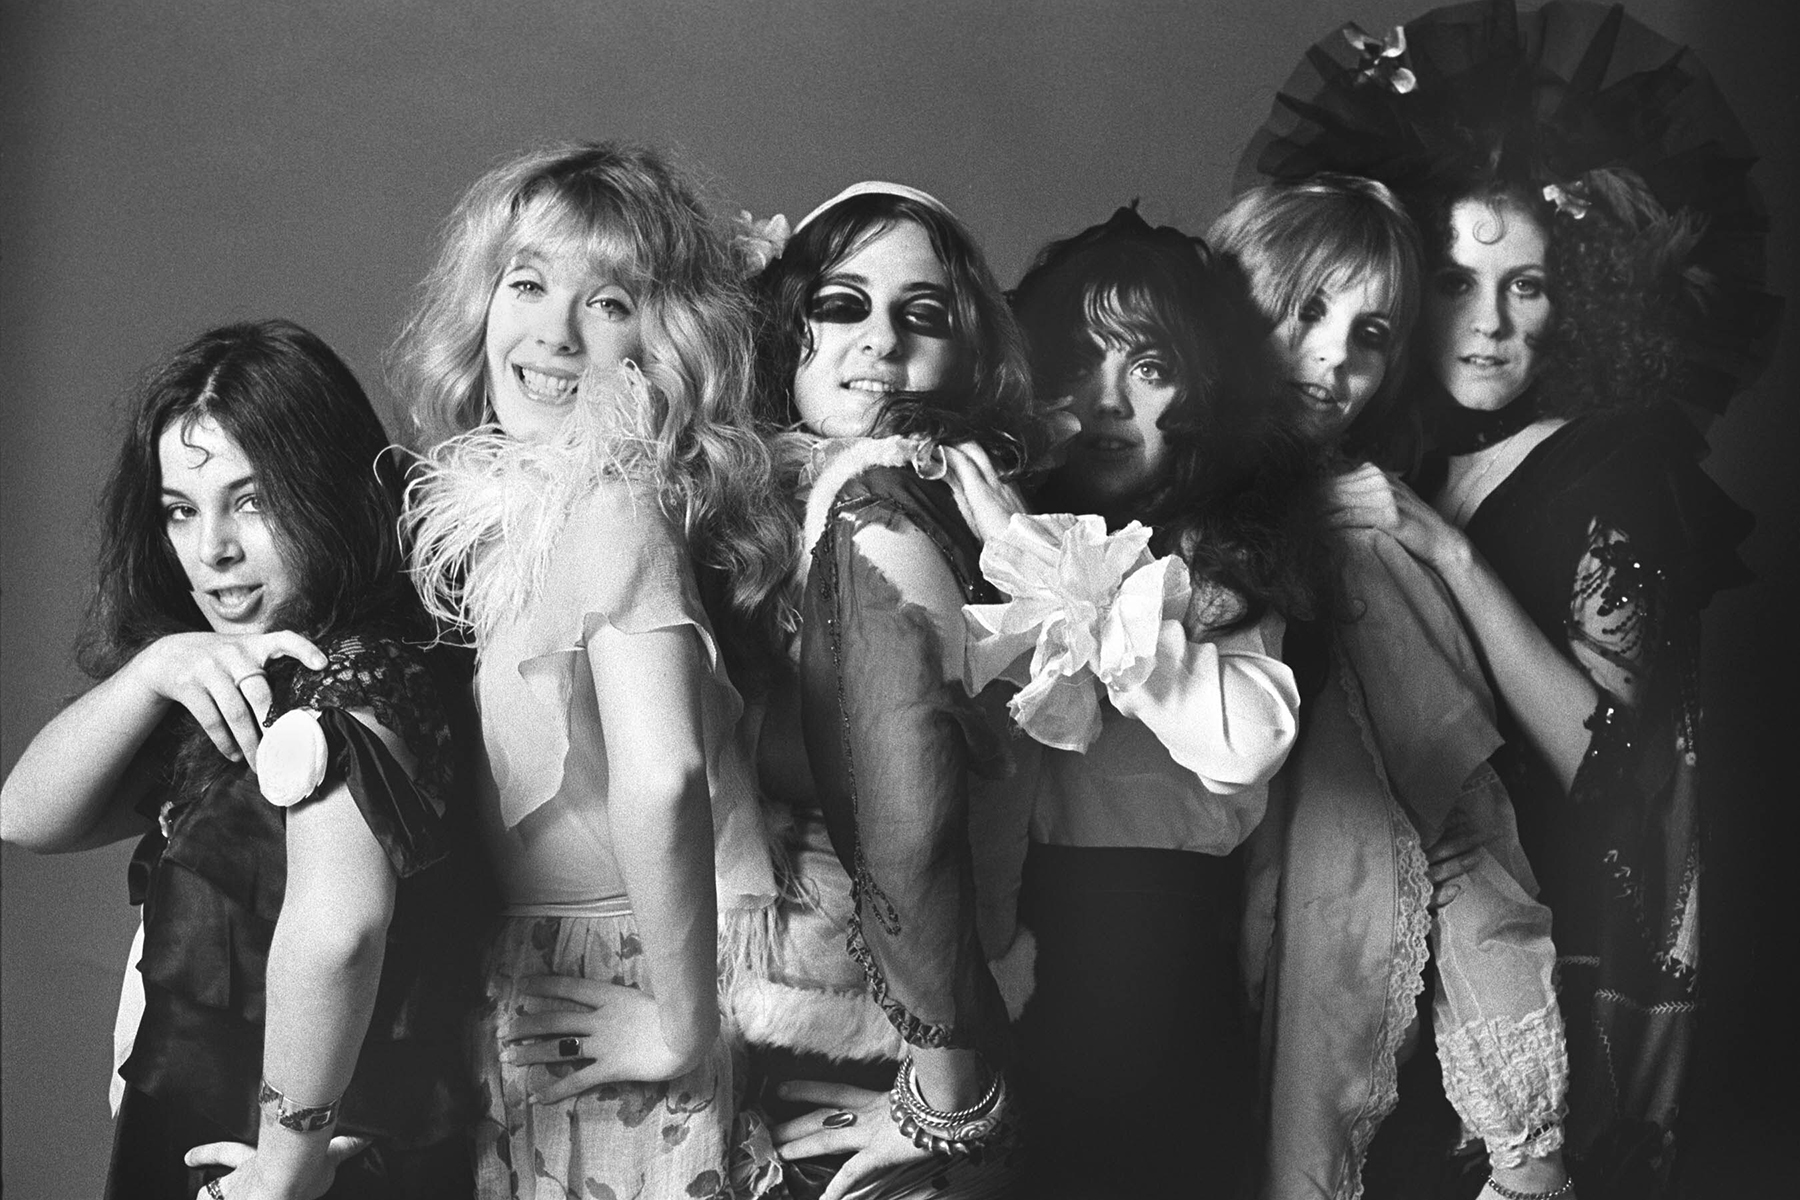 Groupies and Other Girls: 1969 Cover Story - Rolling Stone